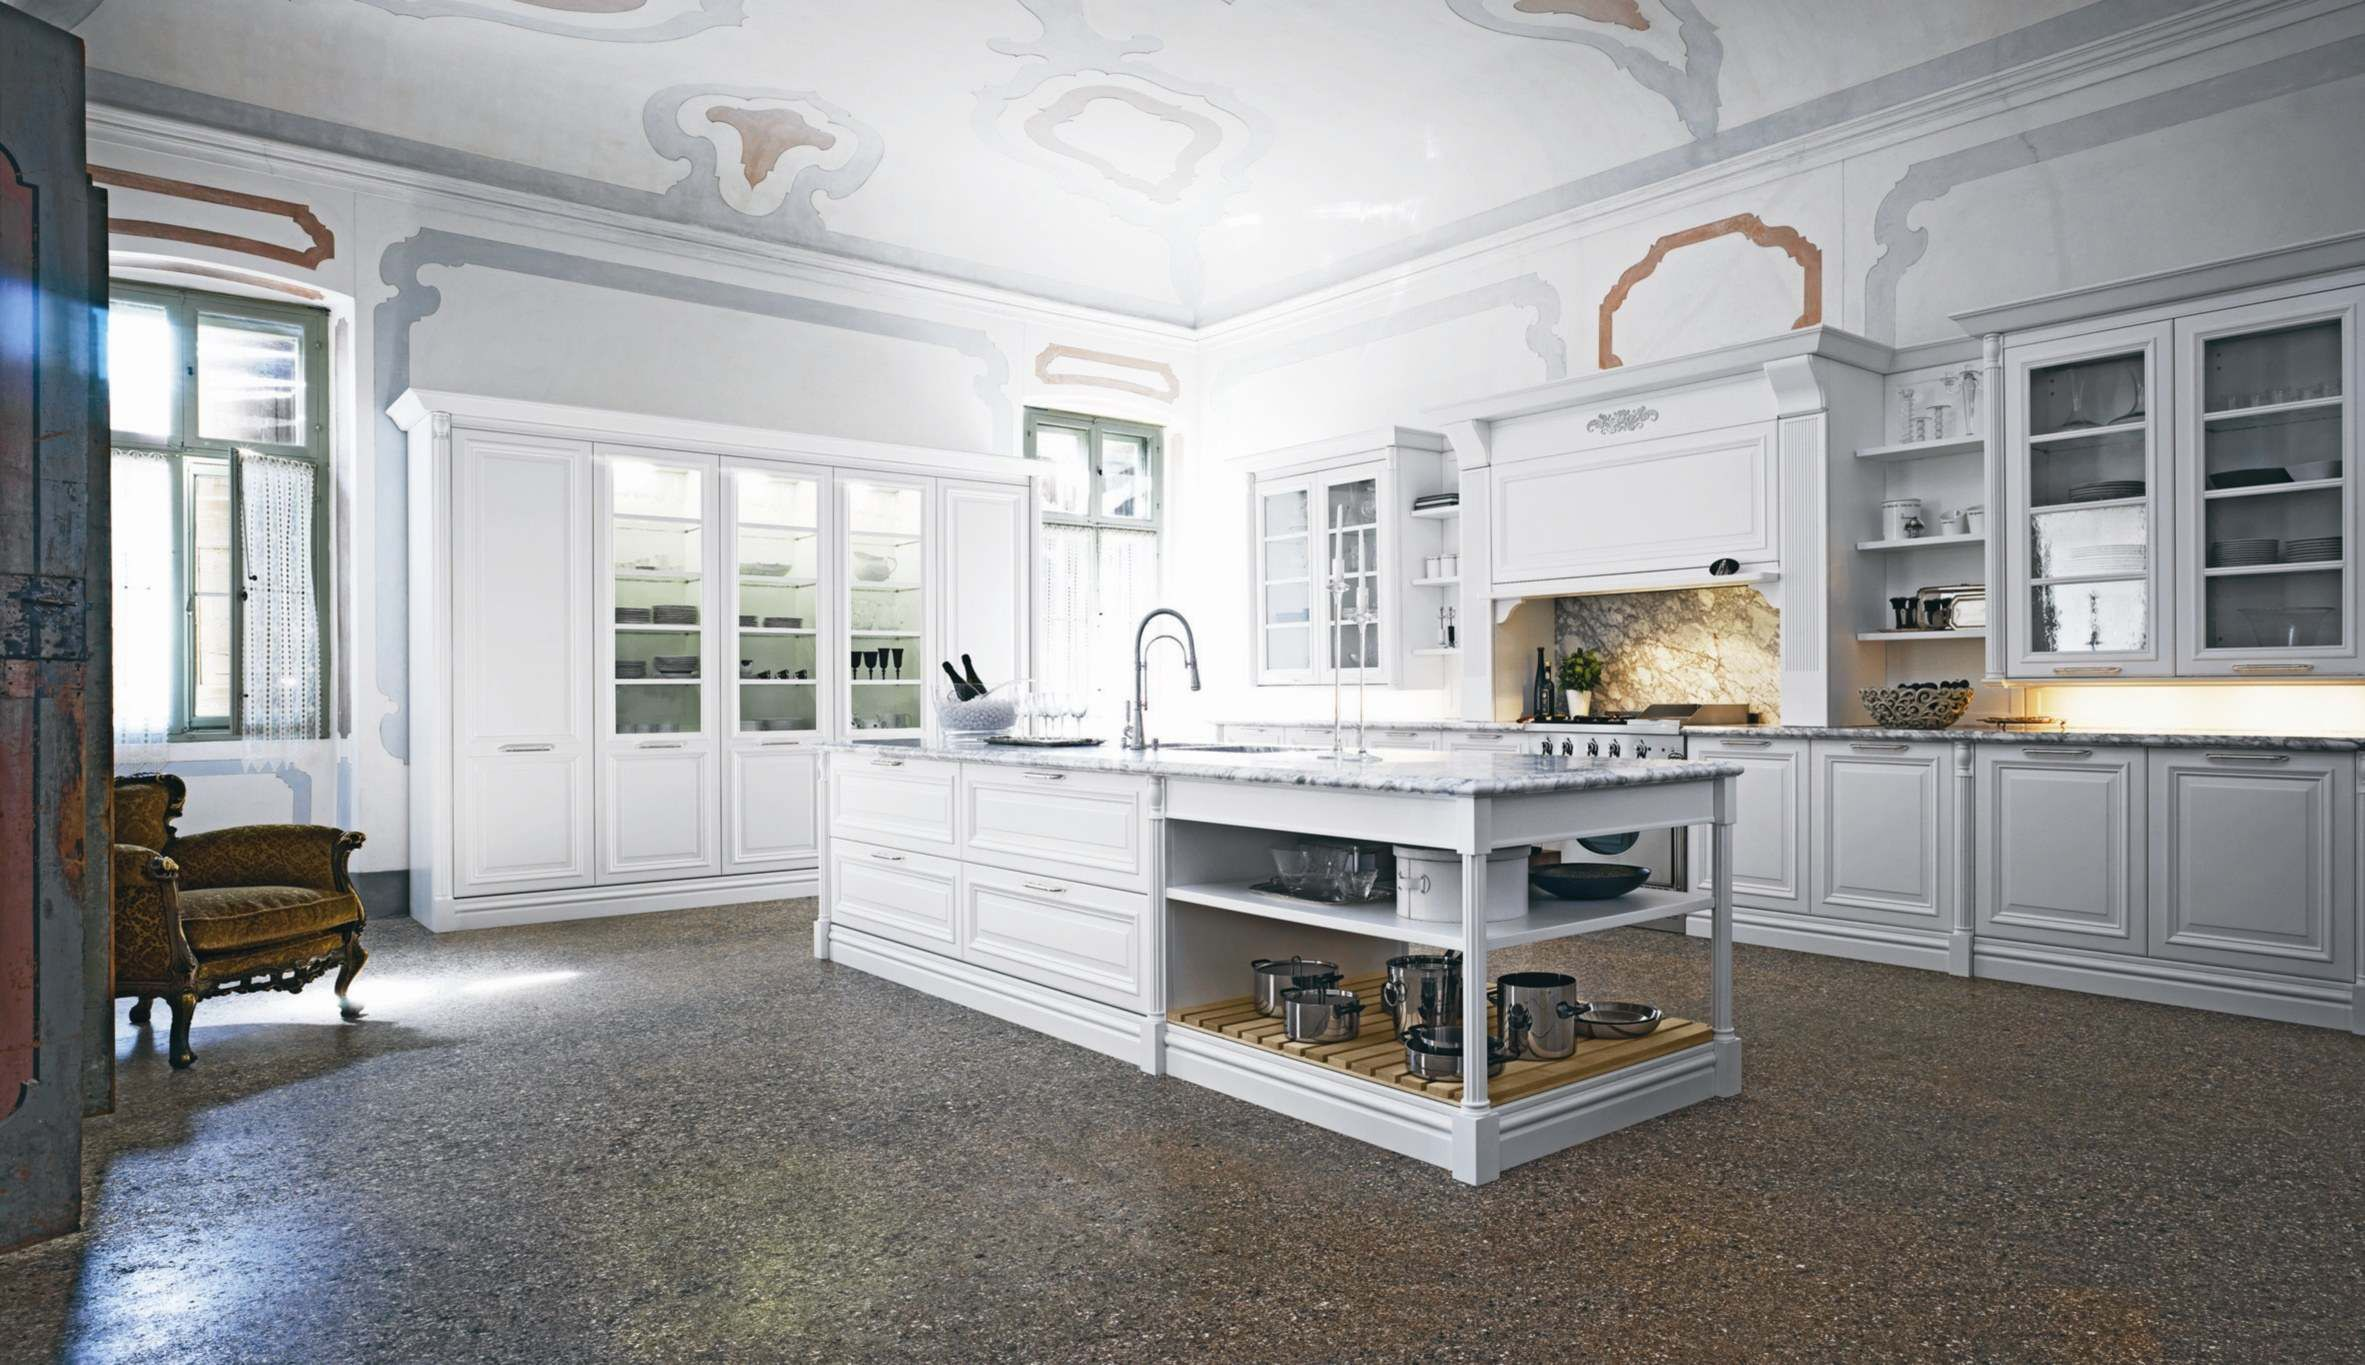 Island With Overhang No Toe Kick Love The Island Kitchen Design Traditional White White Modern Kitchen Traditional Kitchen Interior